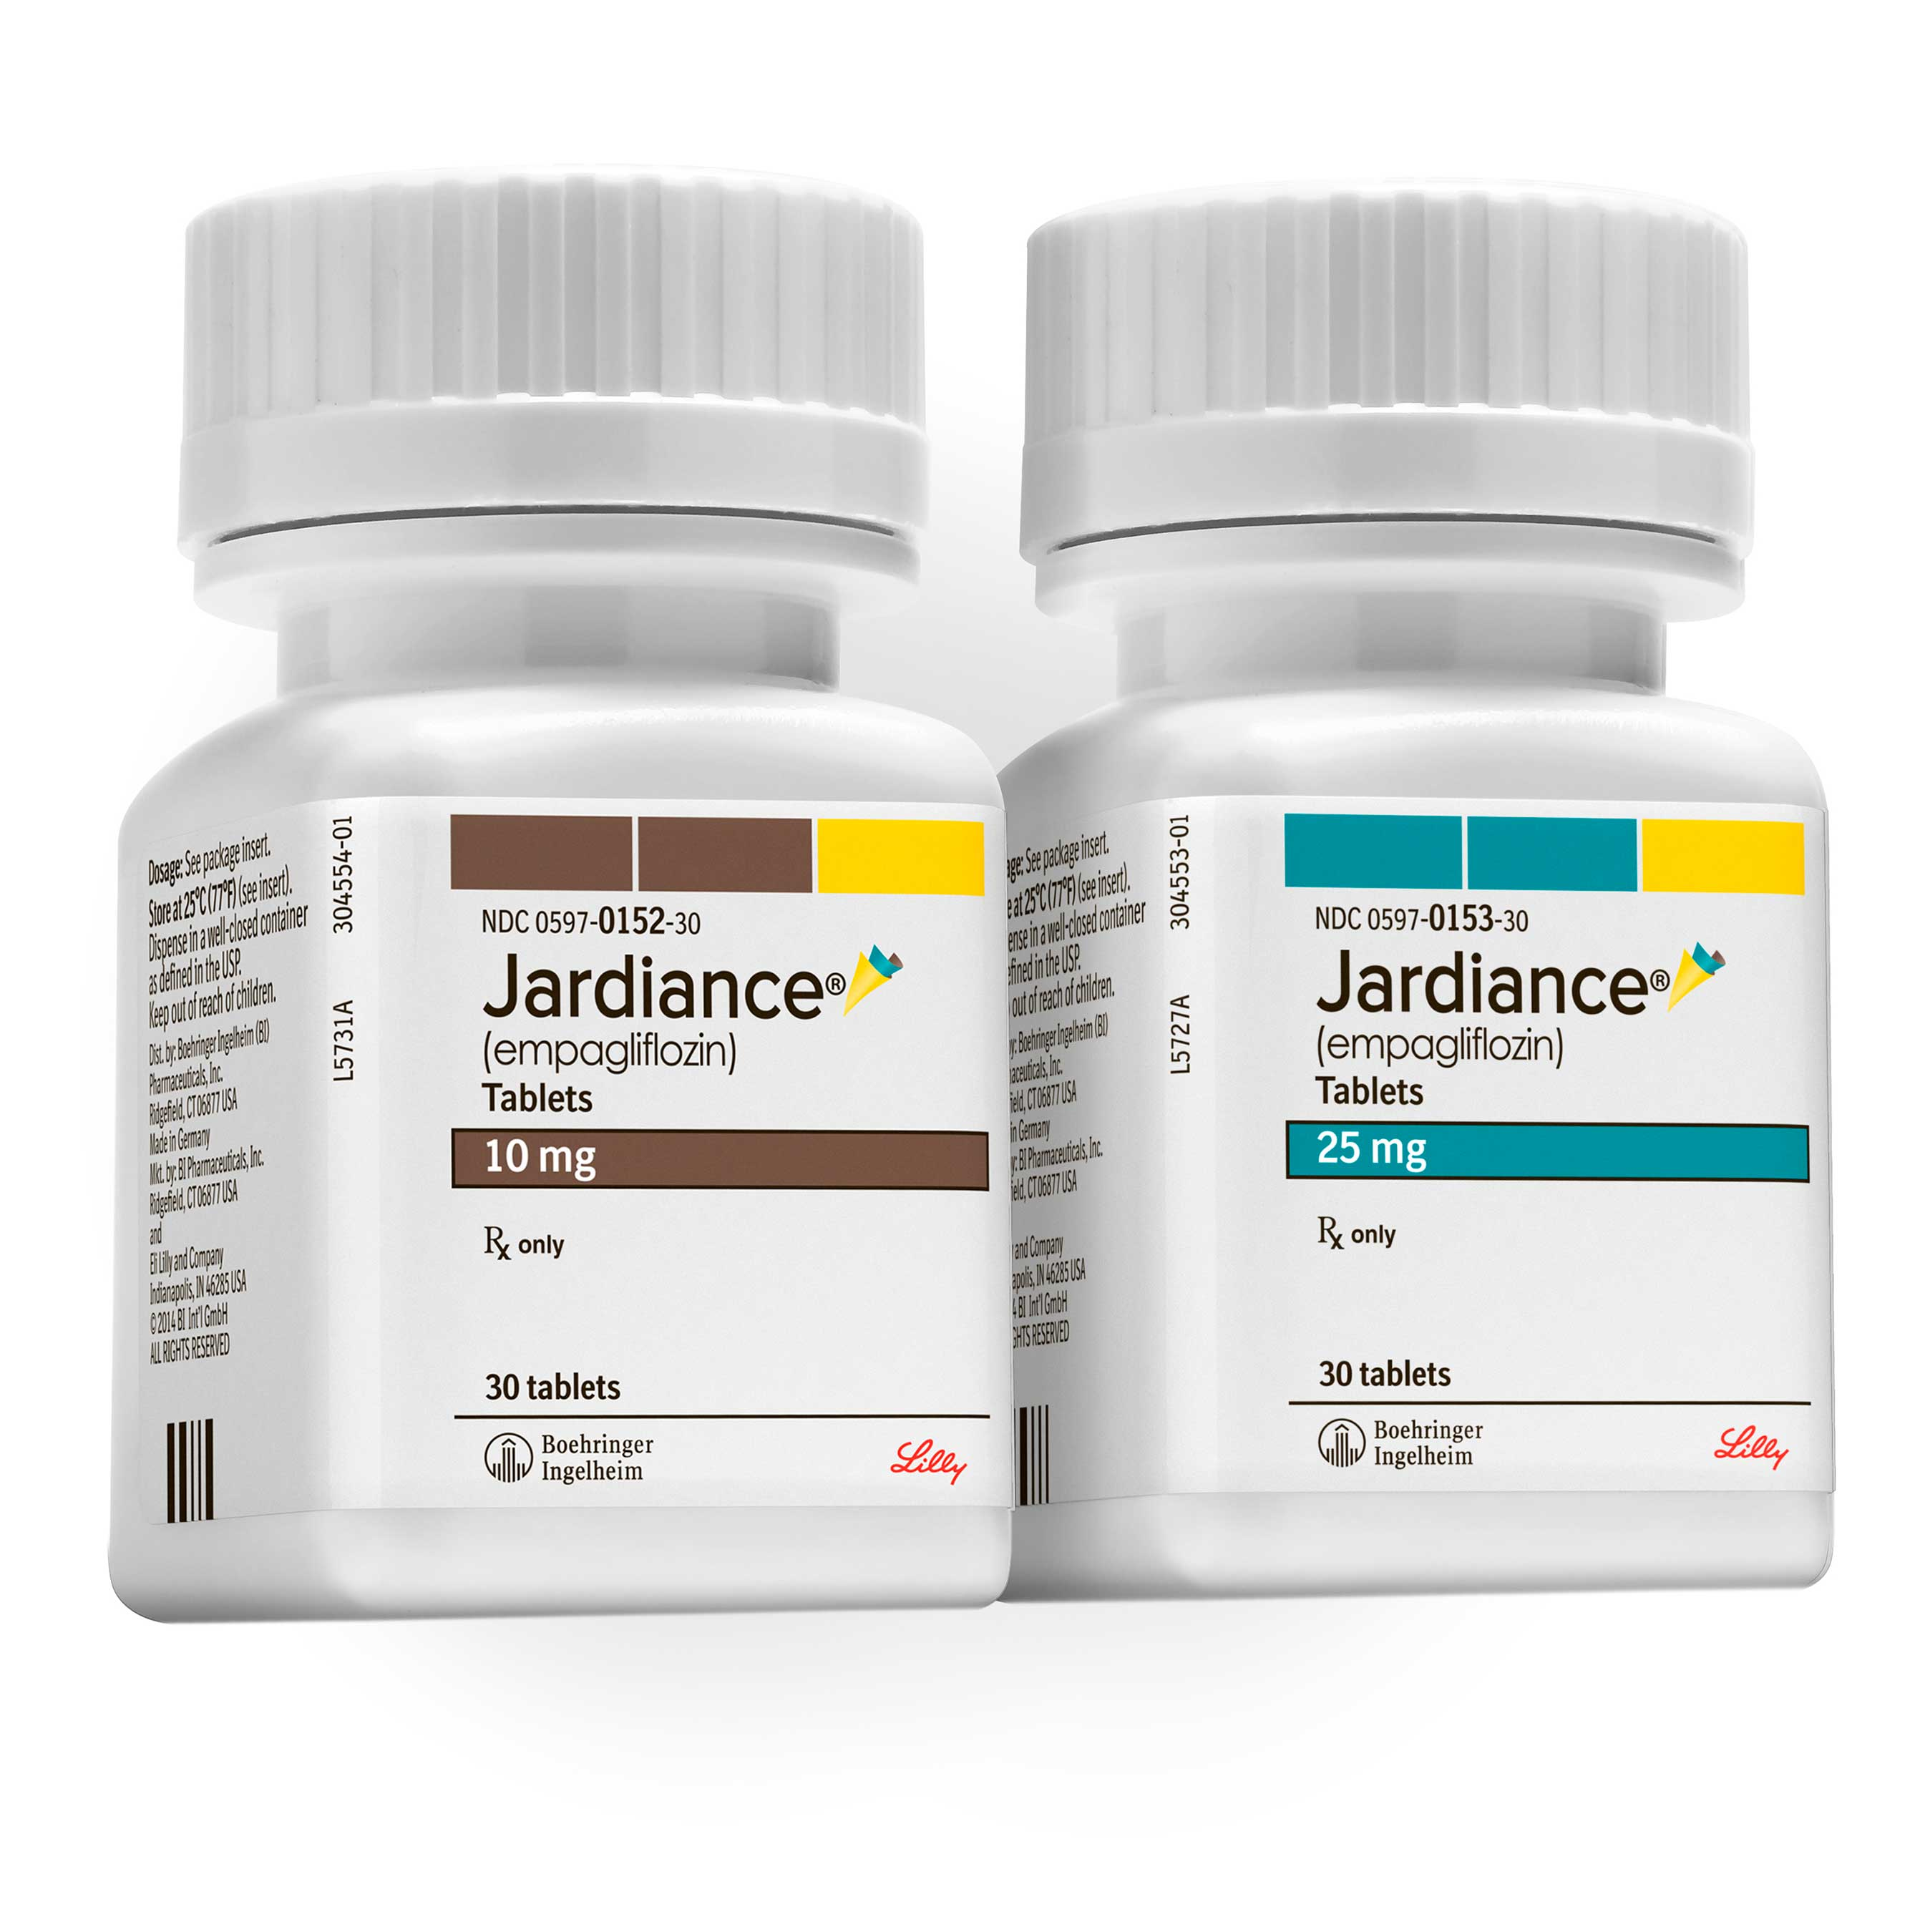 Jardiance® (empagliflozin) is the only diabetes medication